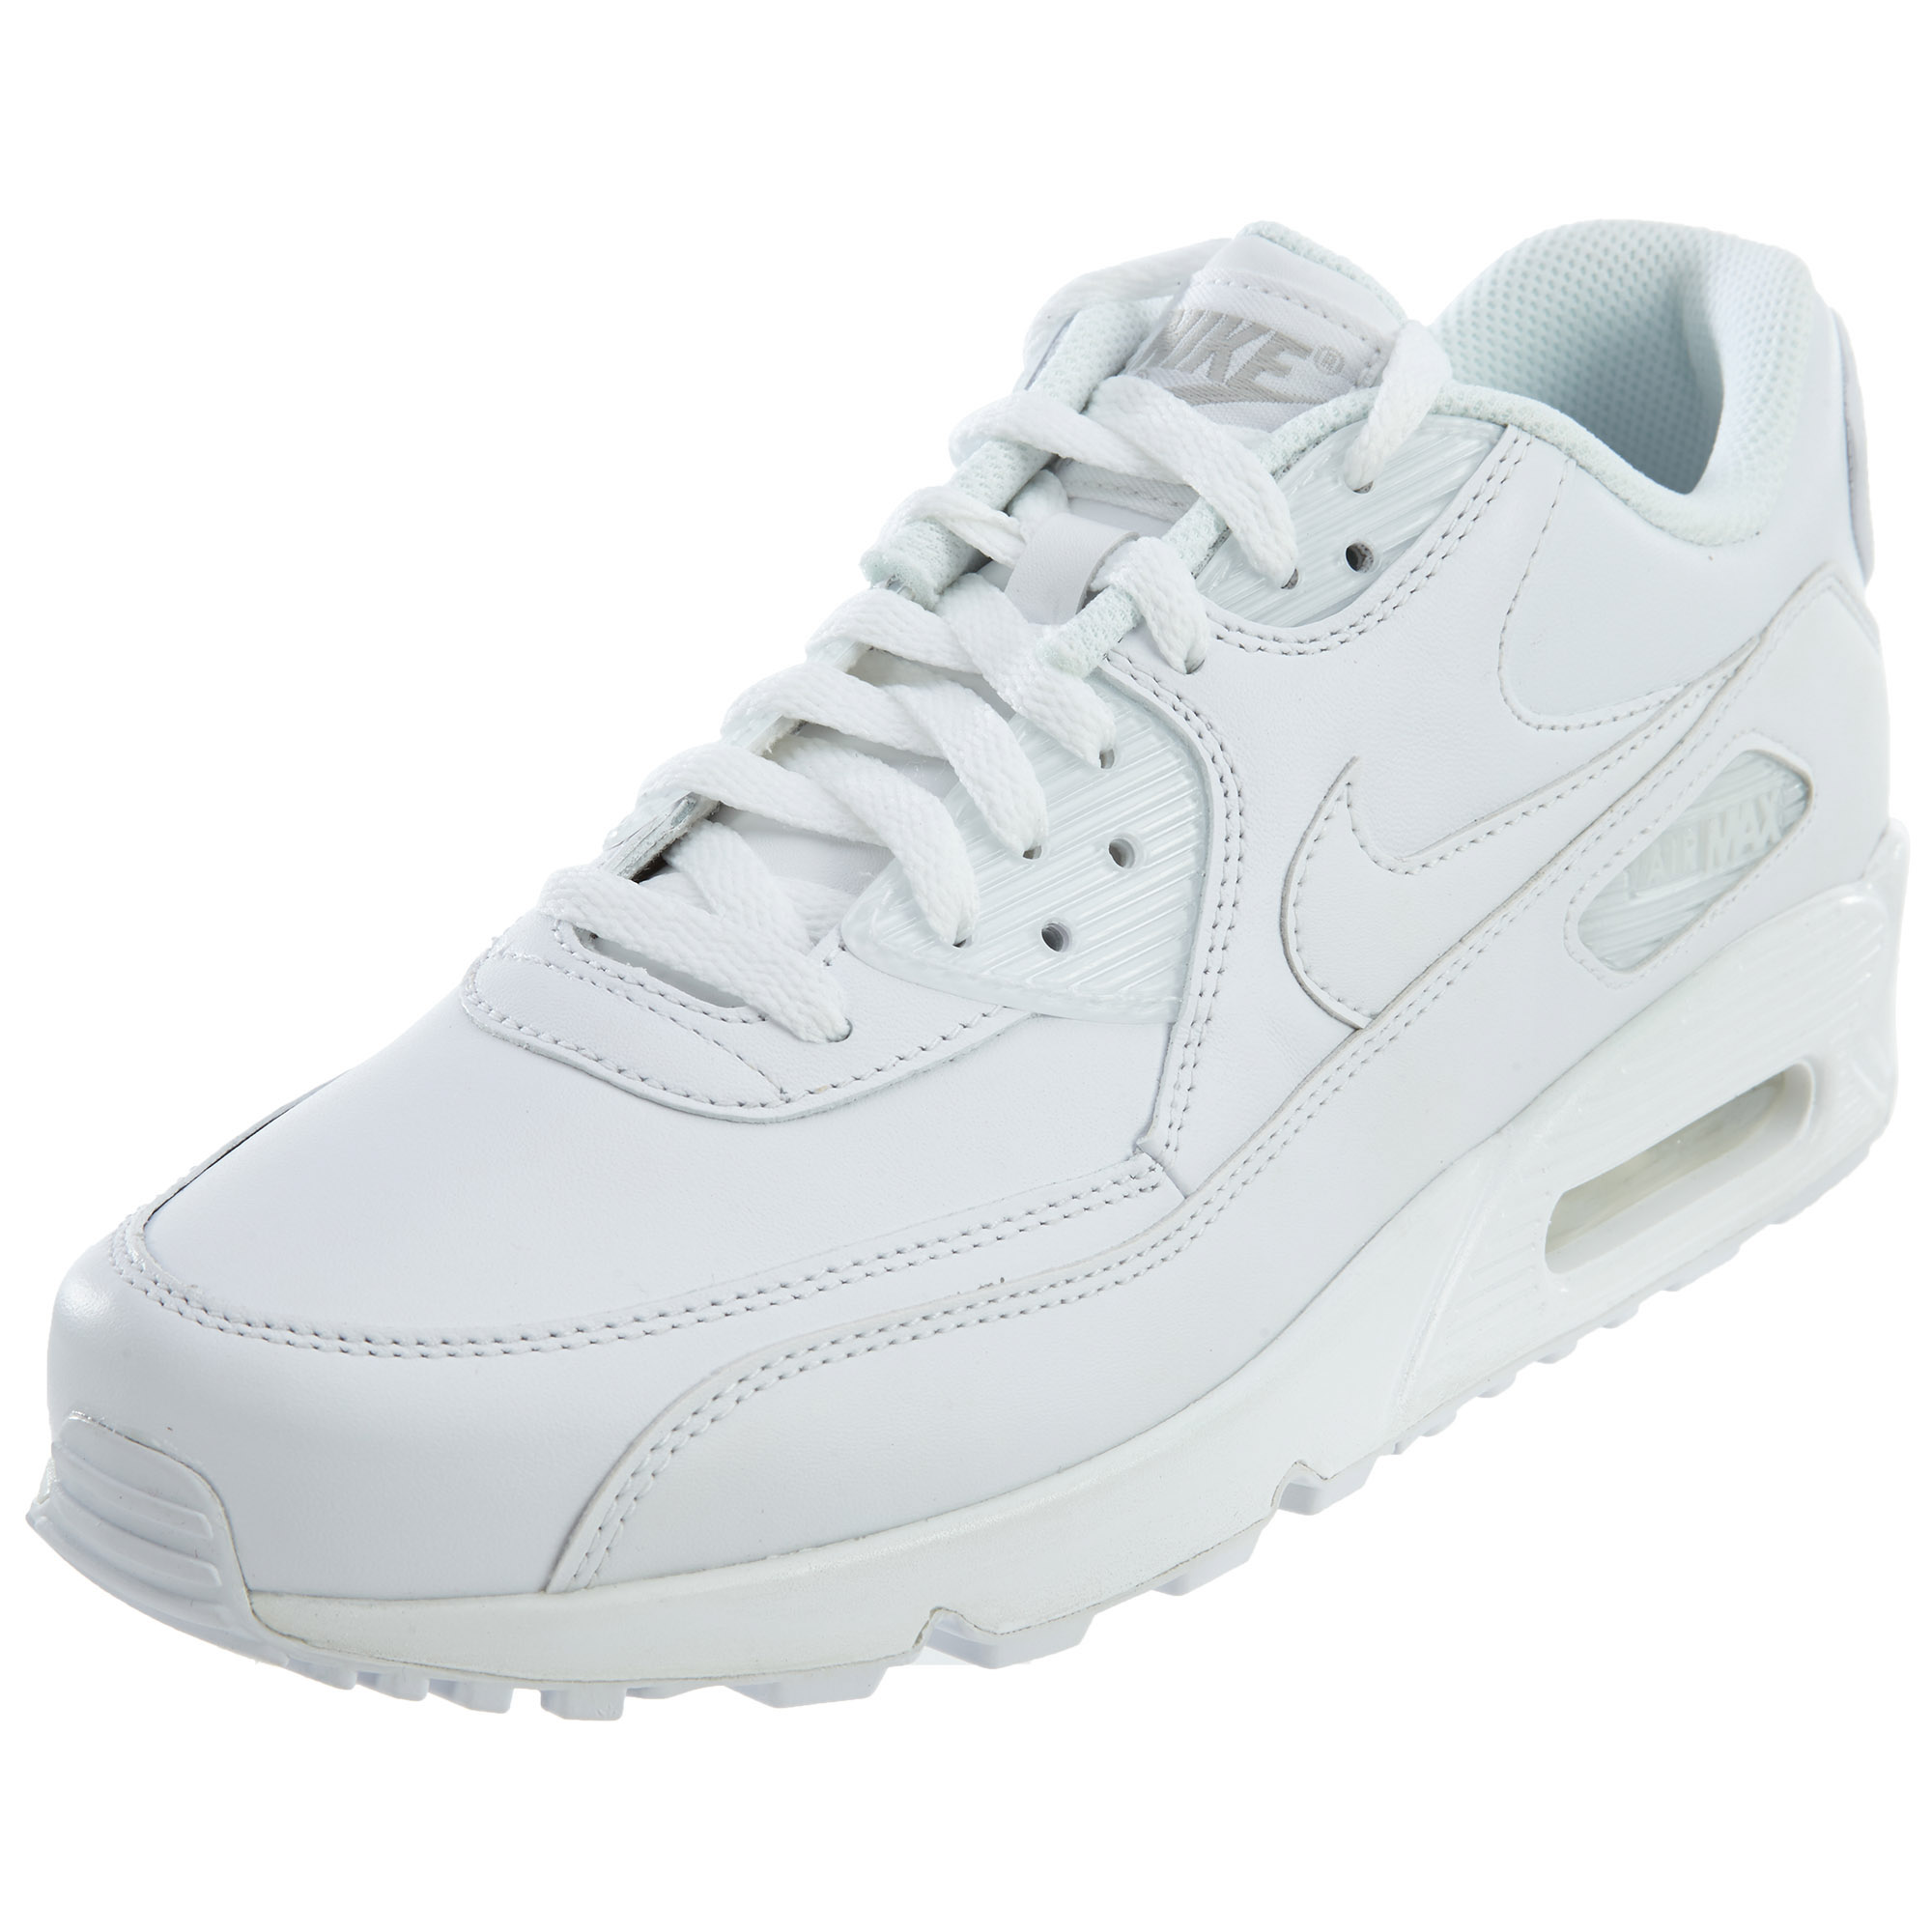 new concept e09bc b1998 Details about Nike Mens Air Max 90 Leather Running Shoes 302519-113